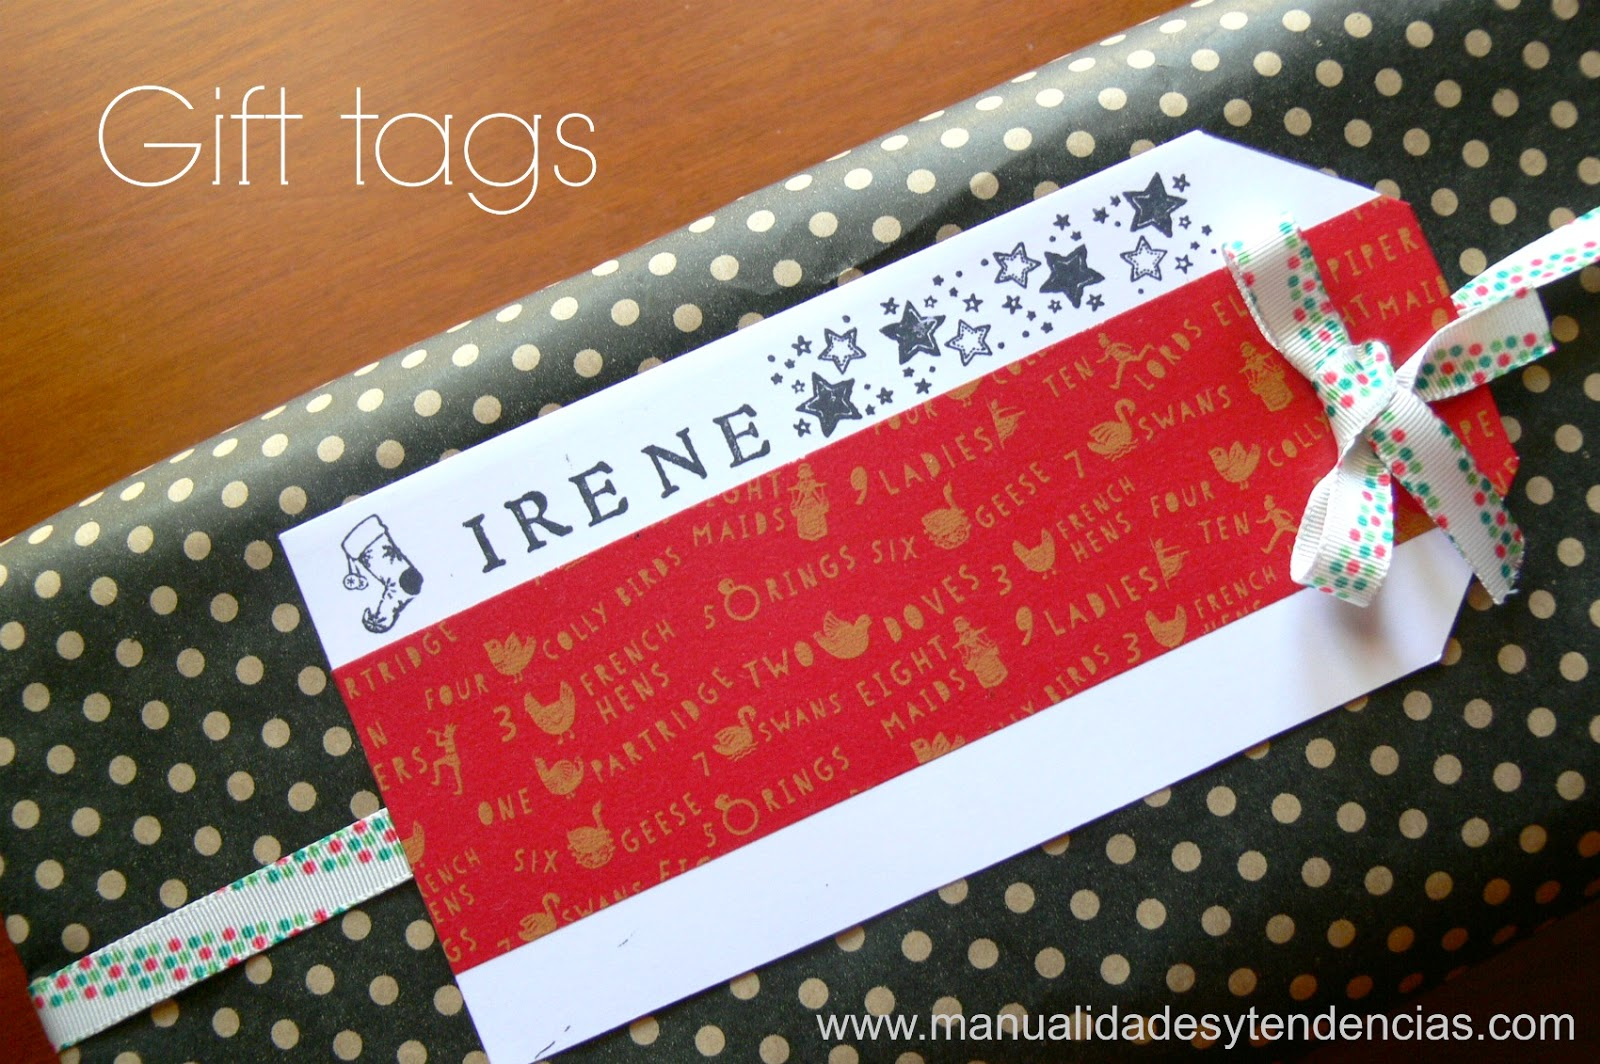 Handmade gift tags scrapbooking